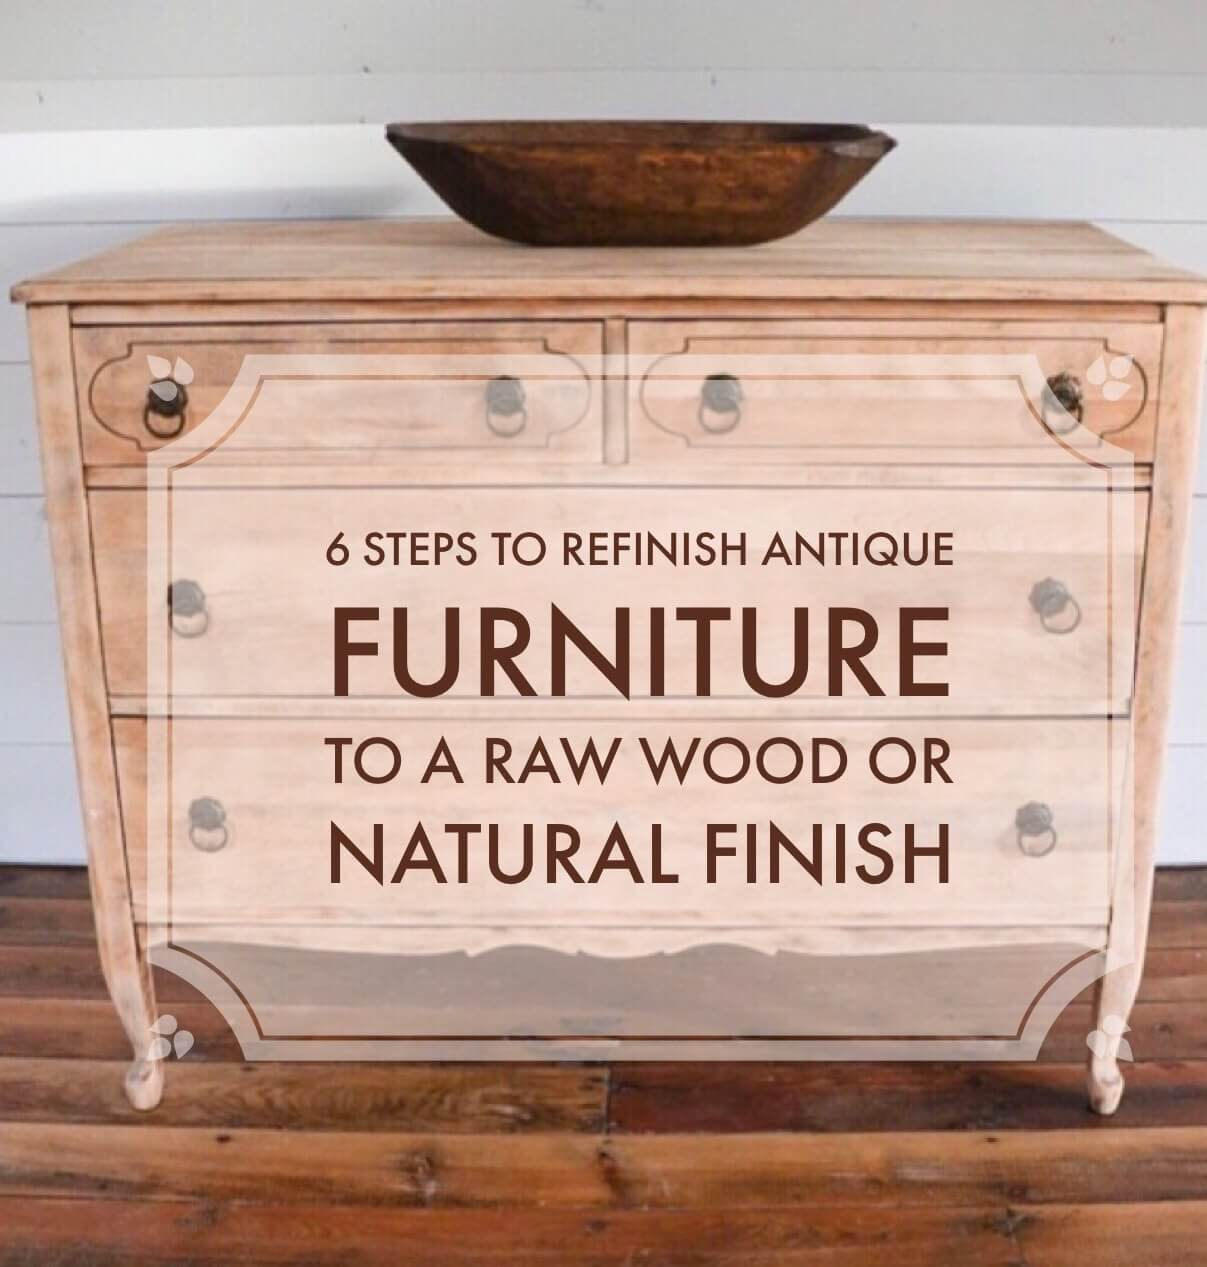 6 Steps to Refinish Antique Furniture to a Natural or Raw Wood Finish - 6 Steps To Refinish Antique Furniture To A Natural Or Raw Wood